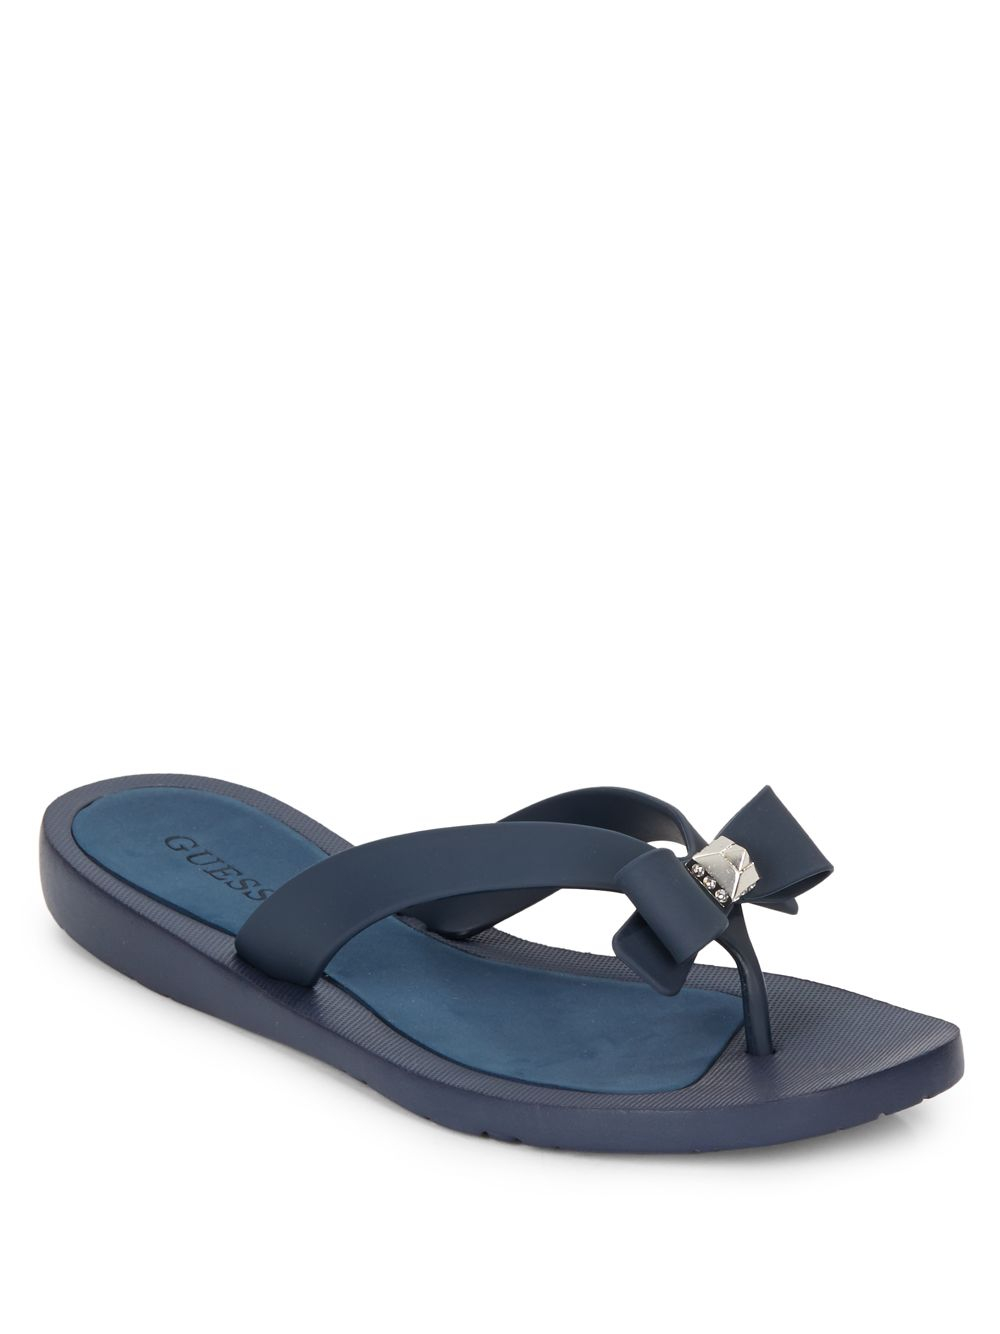 Womens Sandals GUESS Titaney Blue